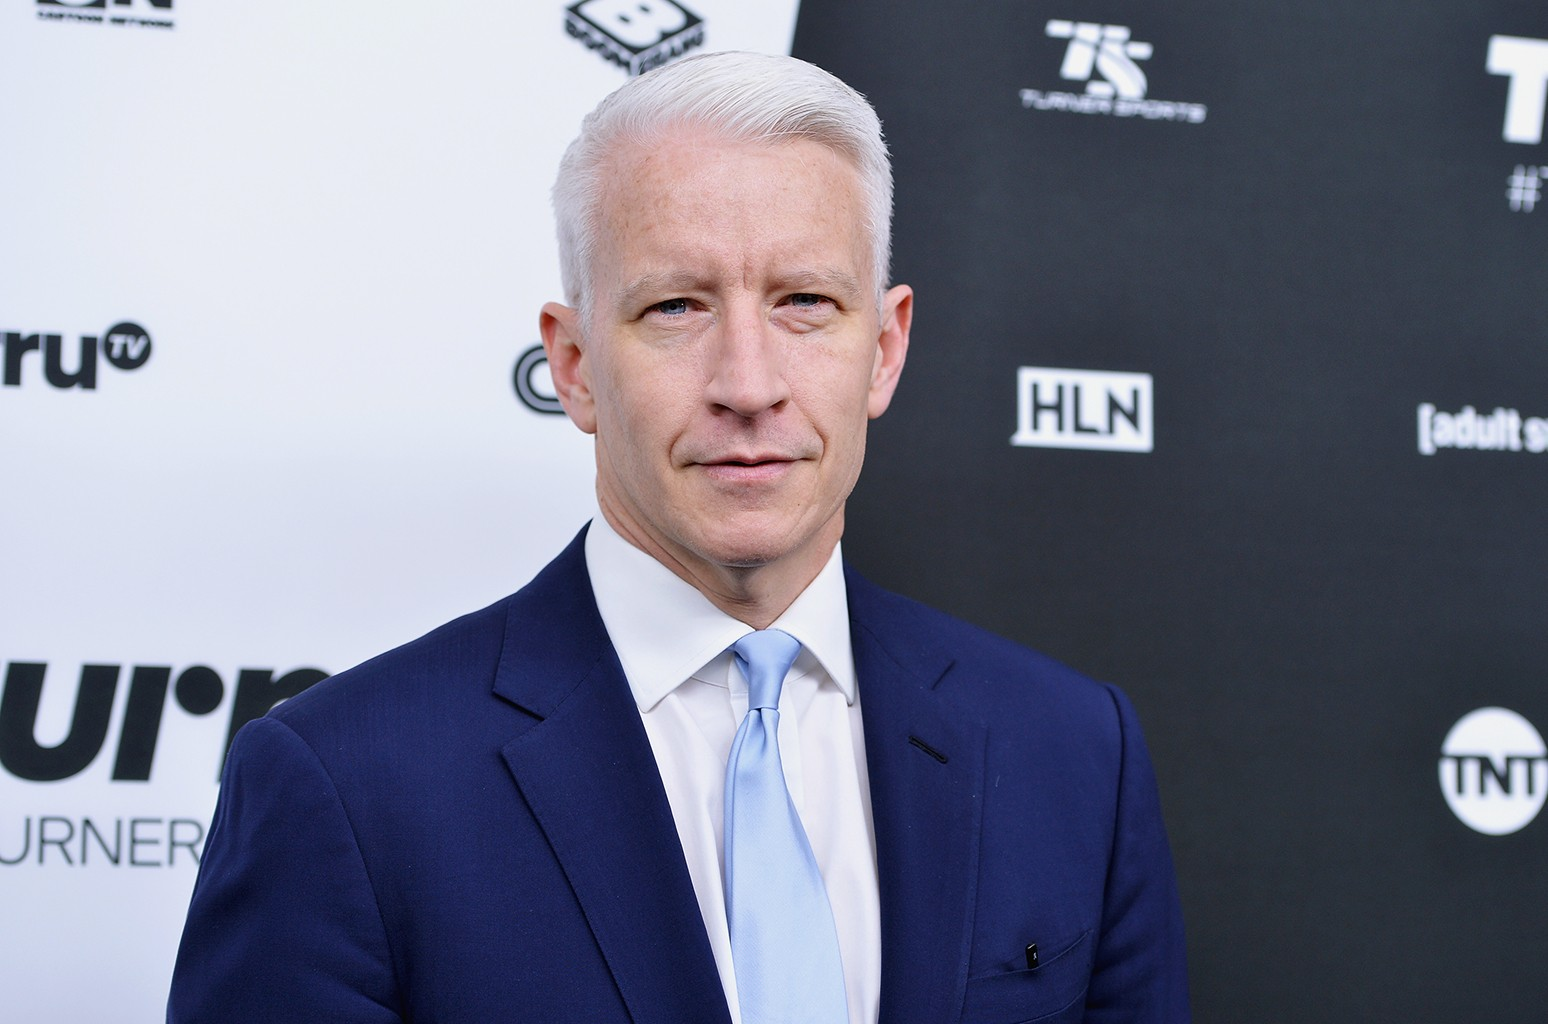 Anderson Cooper in 2016